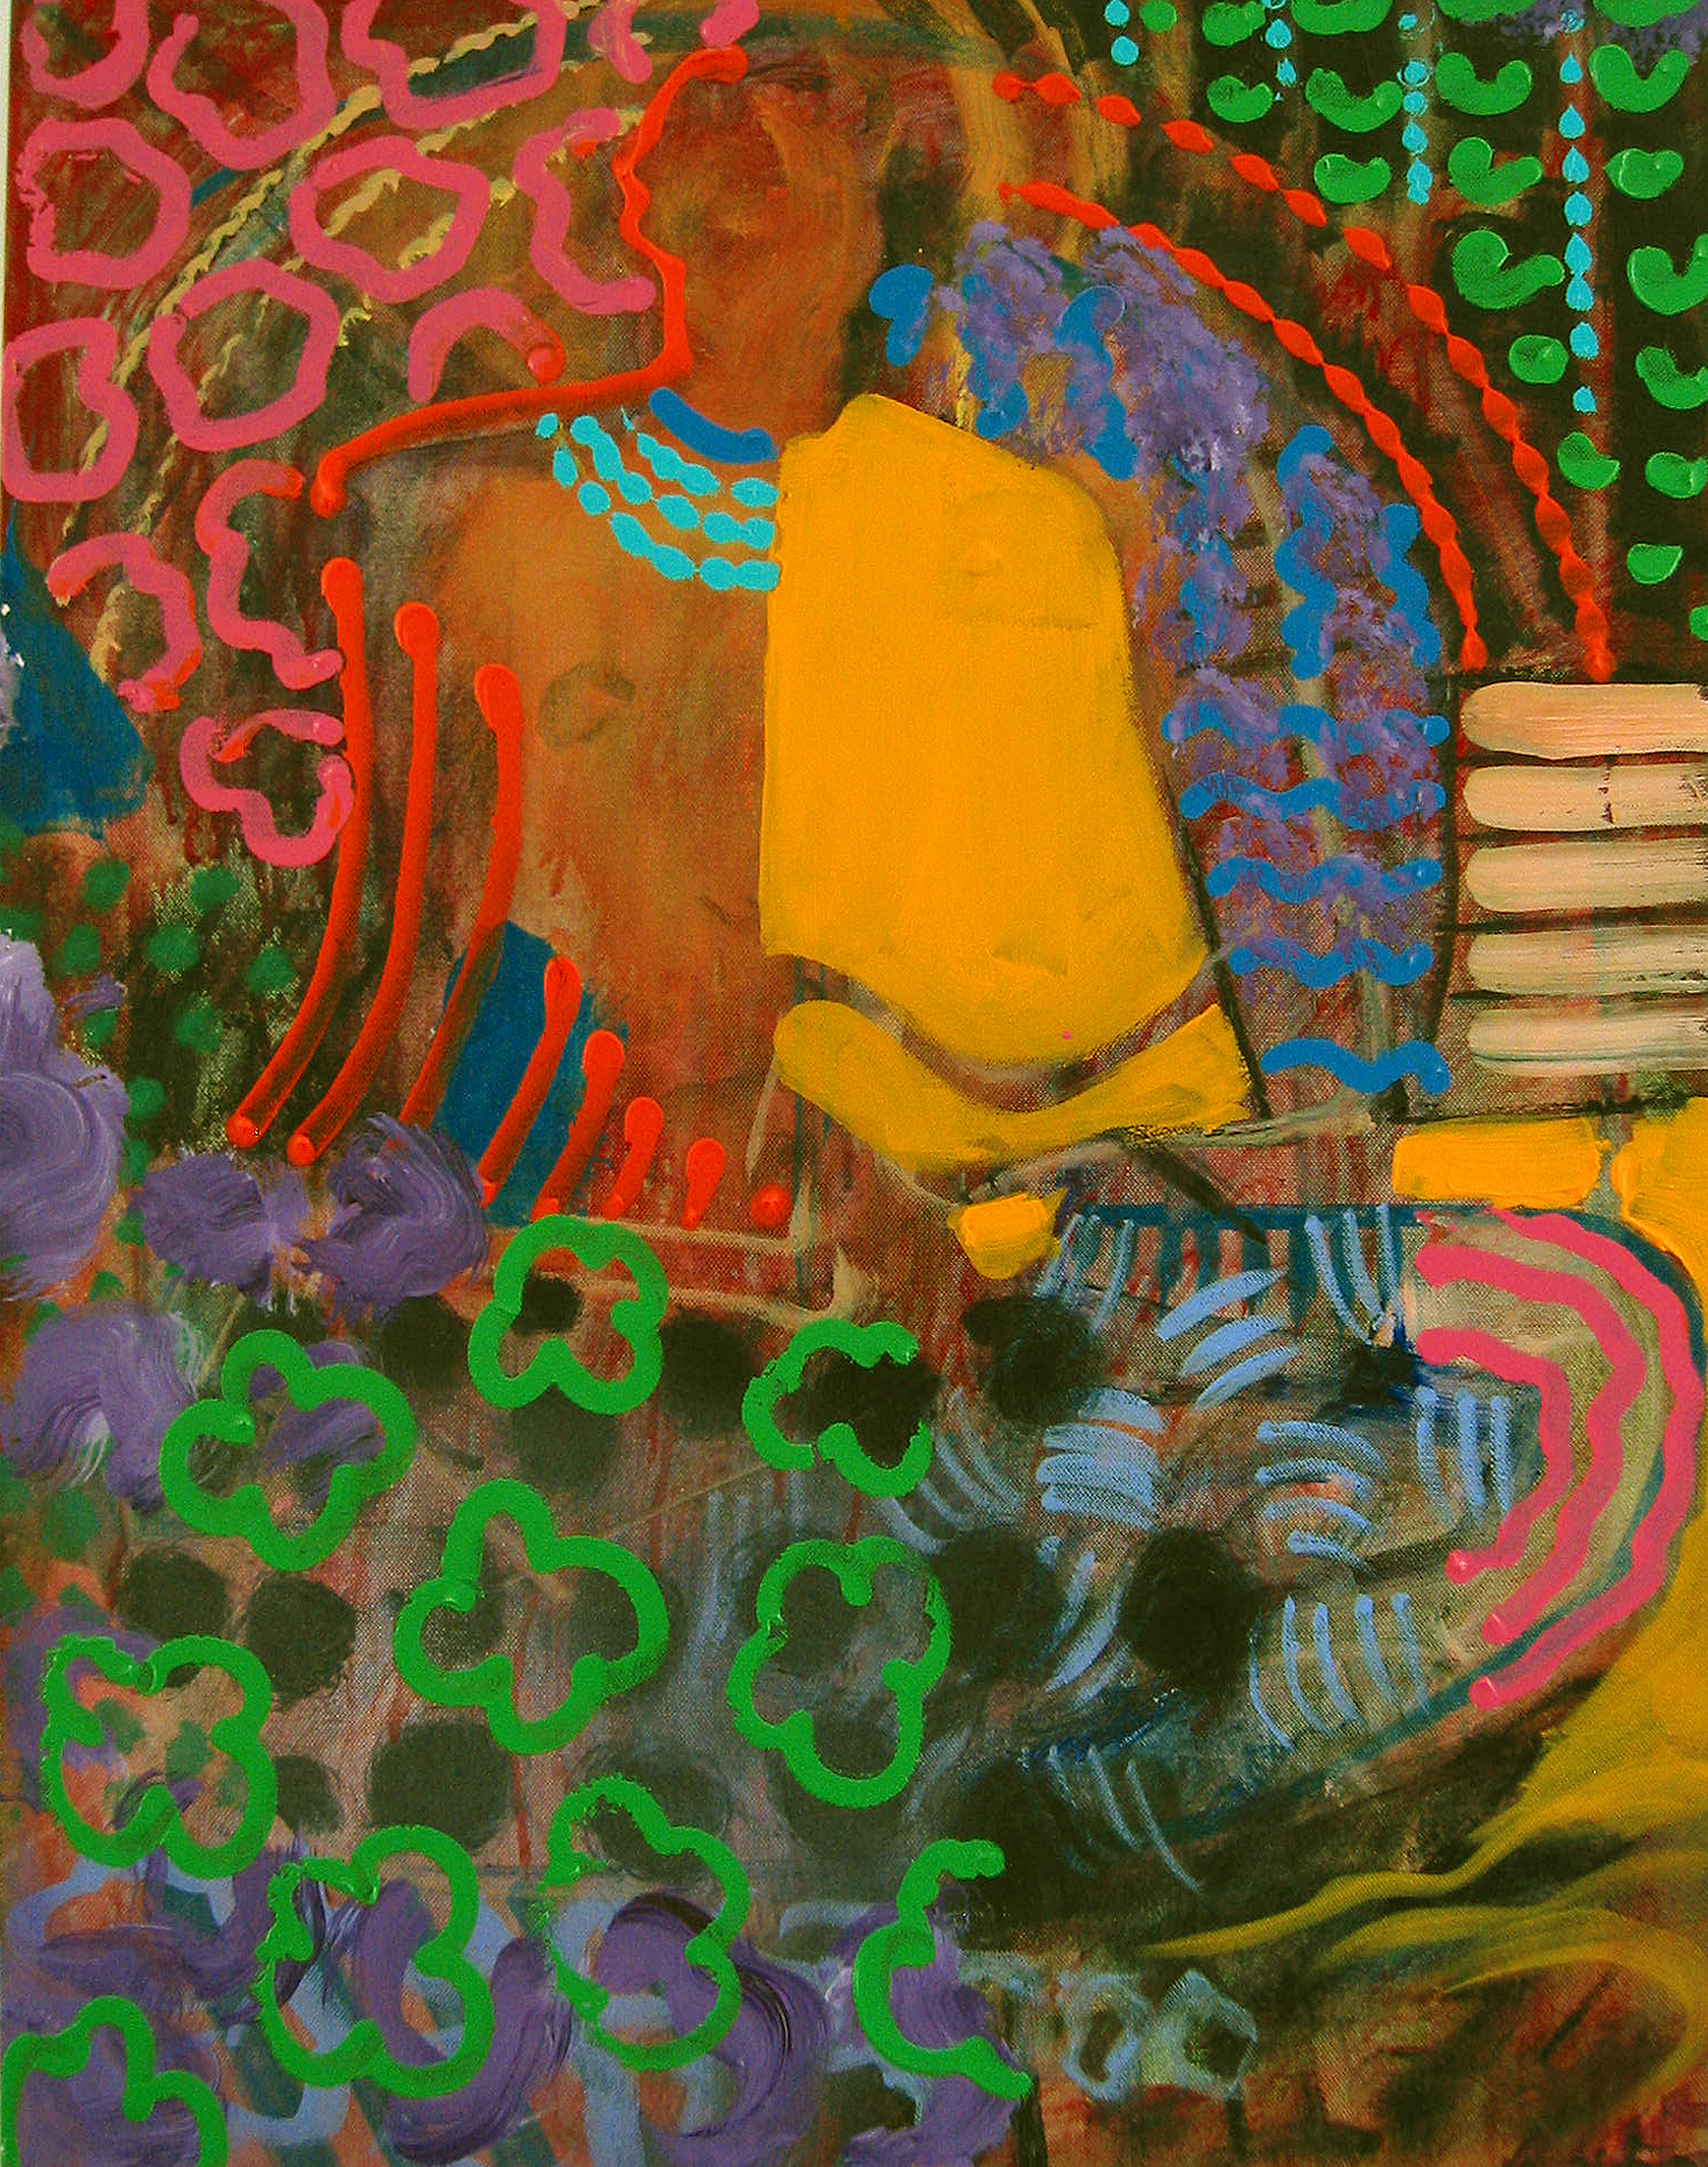 Blue Mirror, 2006, 22x 28 inches, Acrylic on canvas